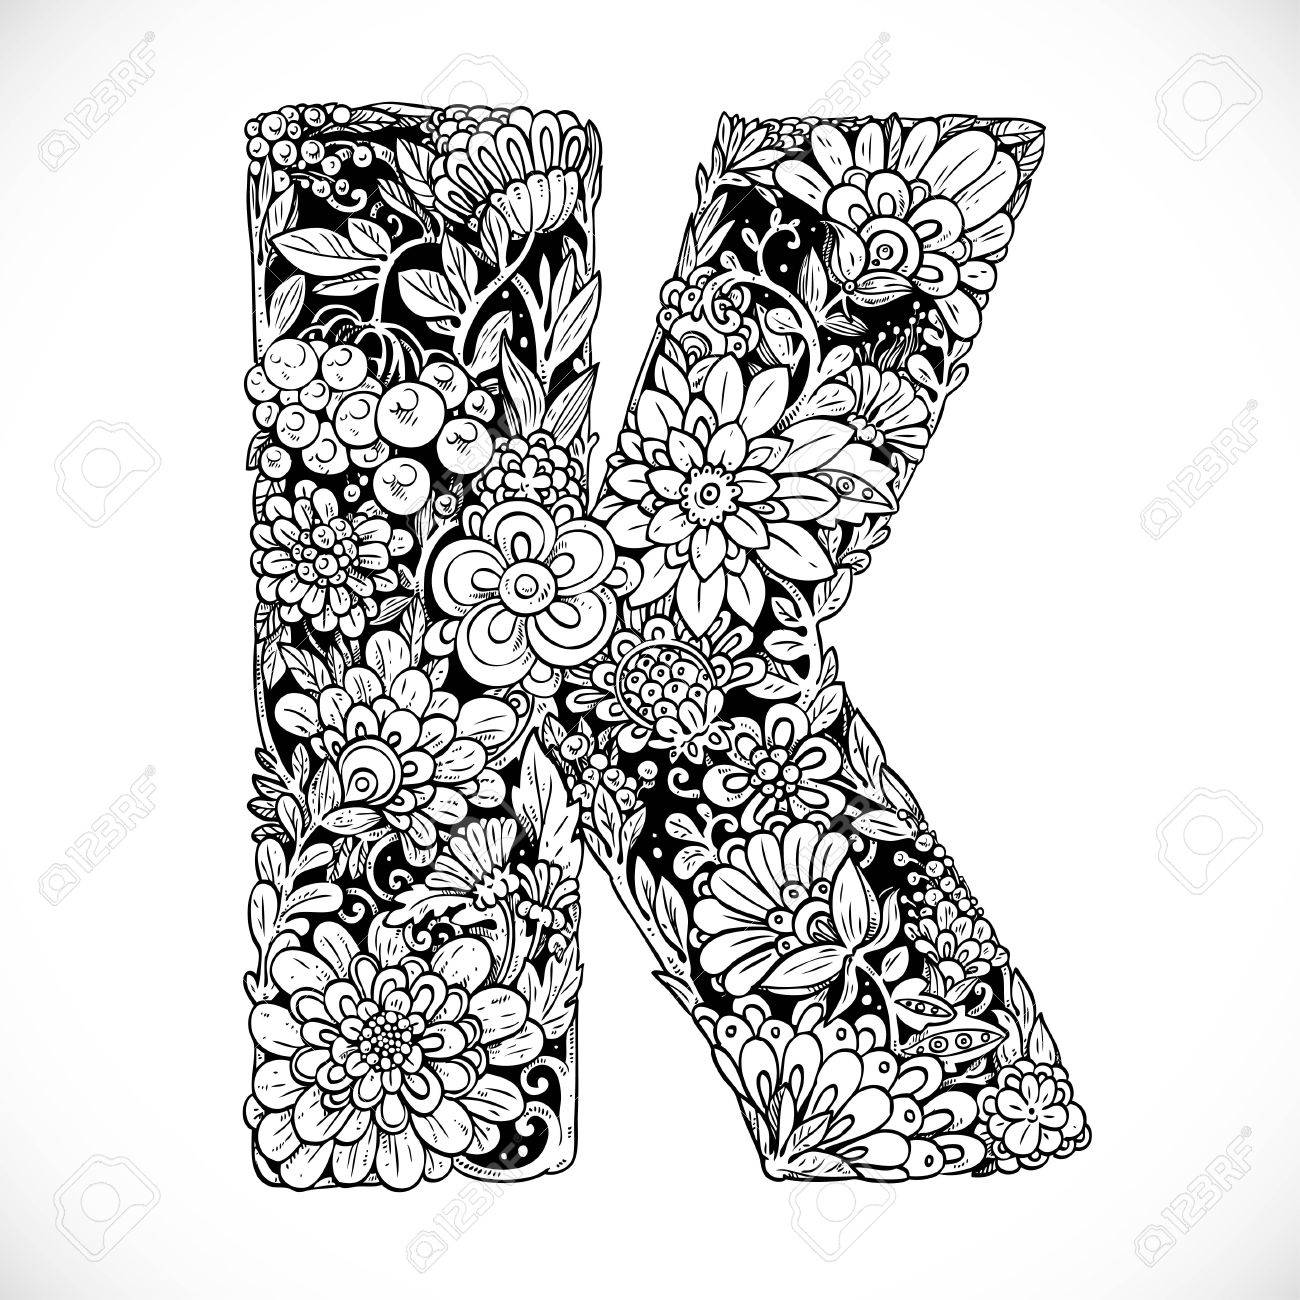 Doodles Font From Ornamental Flowers Letter K Black And White